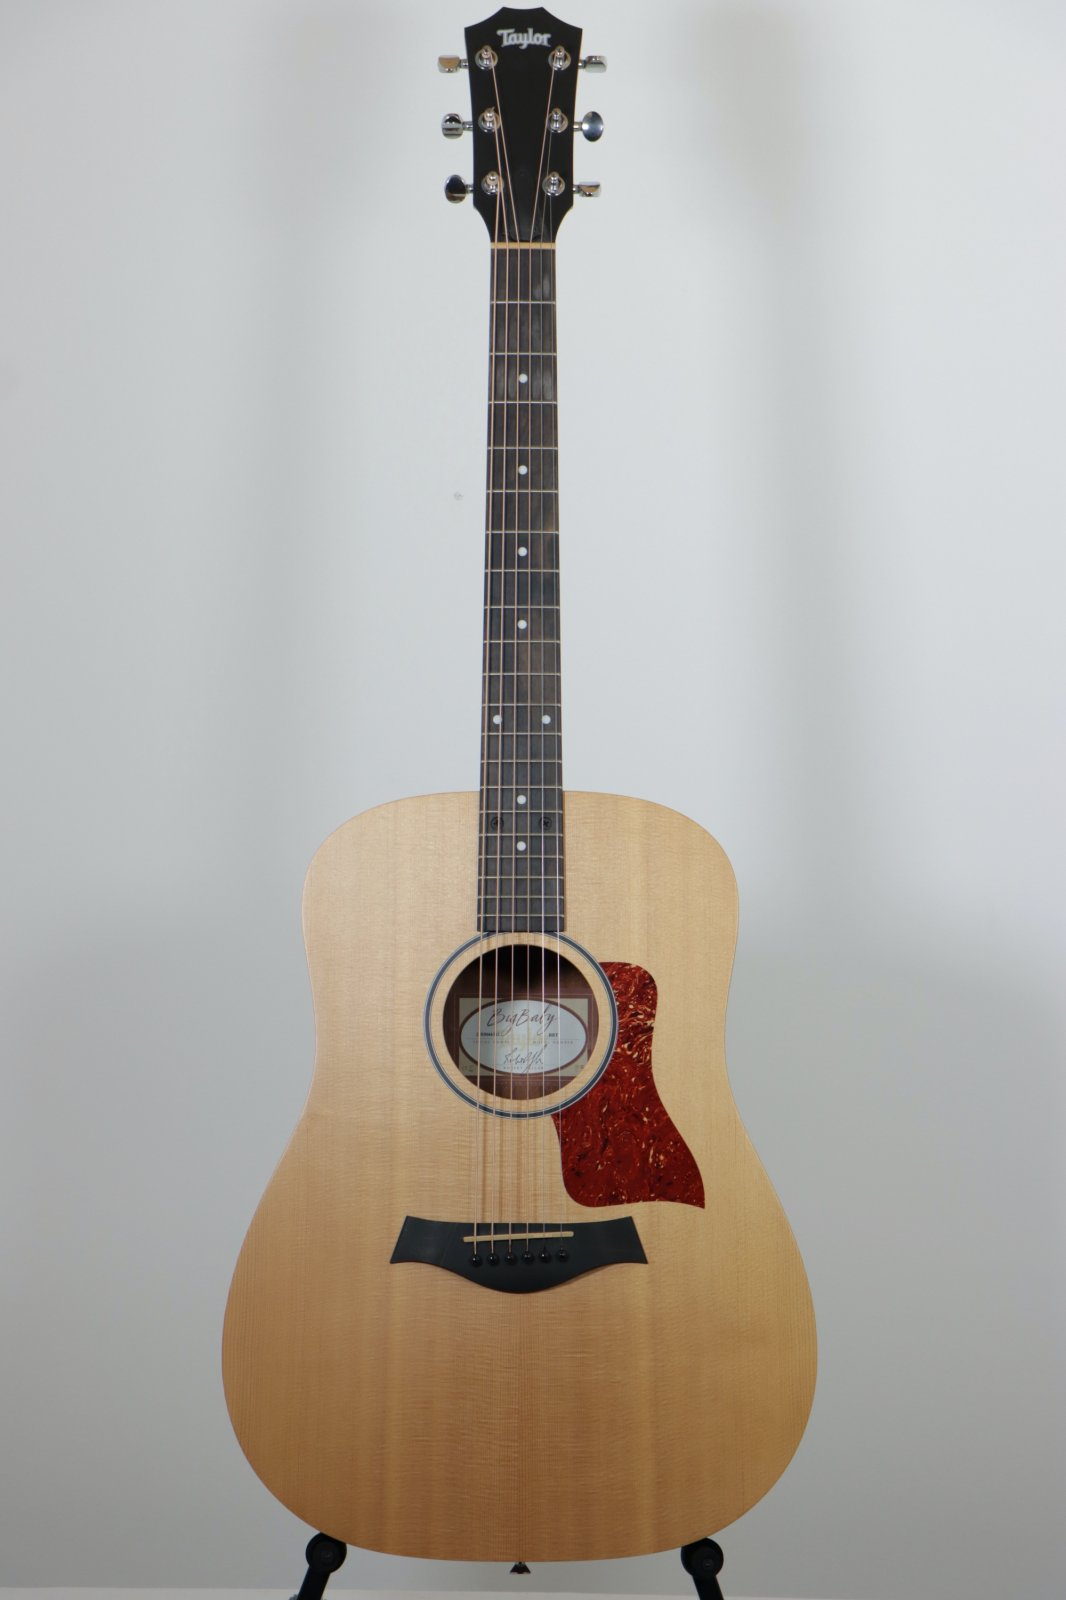 USED 2014 Taylor BBT Big Baby Acoustic Guitar with Taylor Gig Bag / Hairline Top Crack